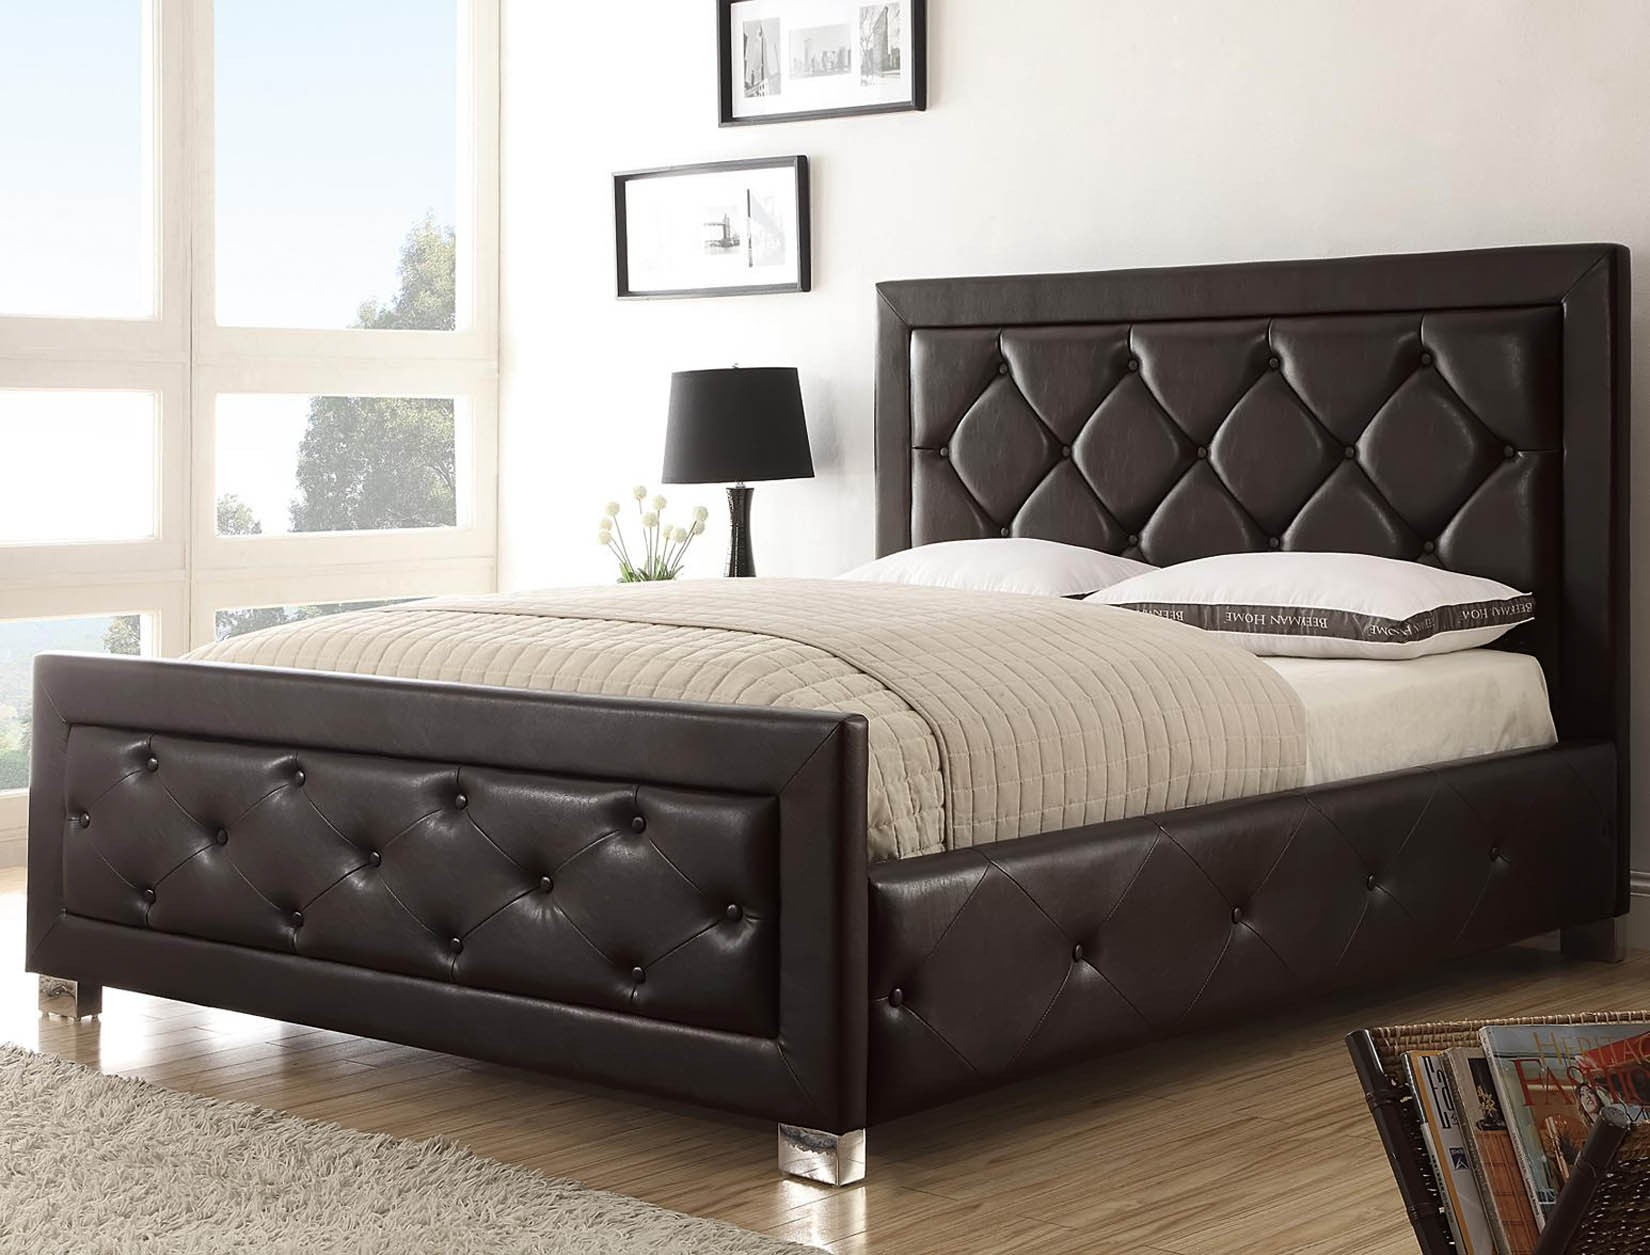 Elegant Upholstered Headboards